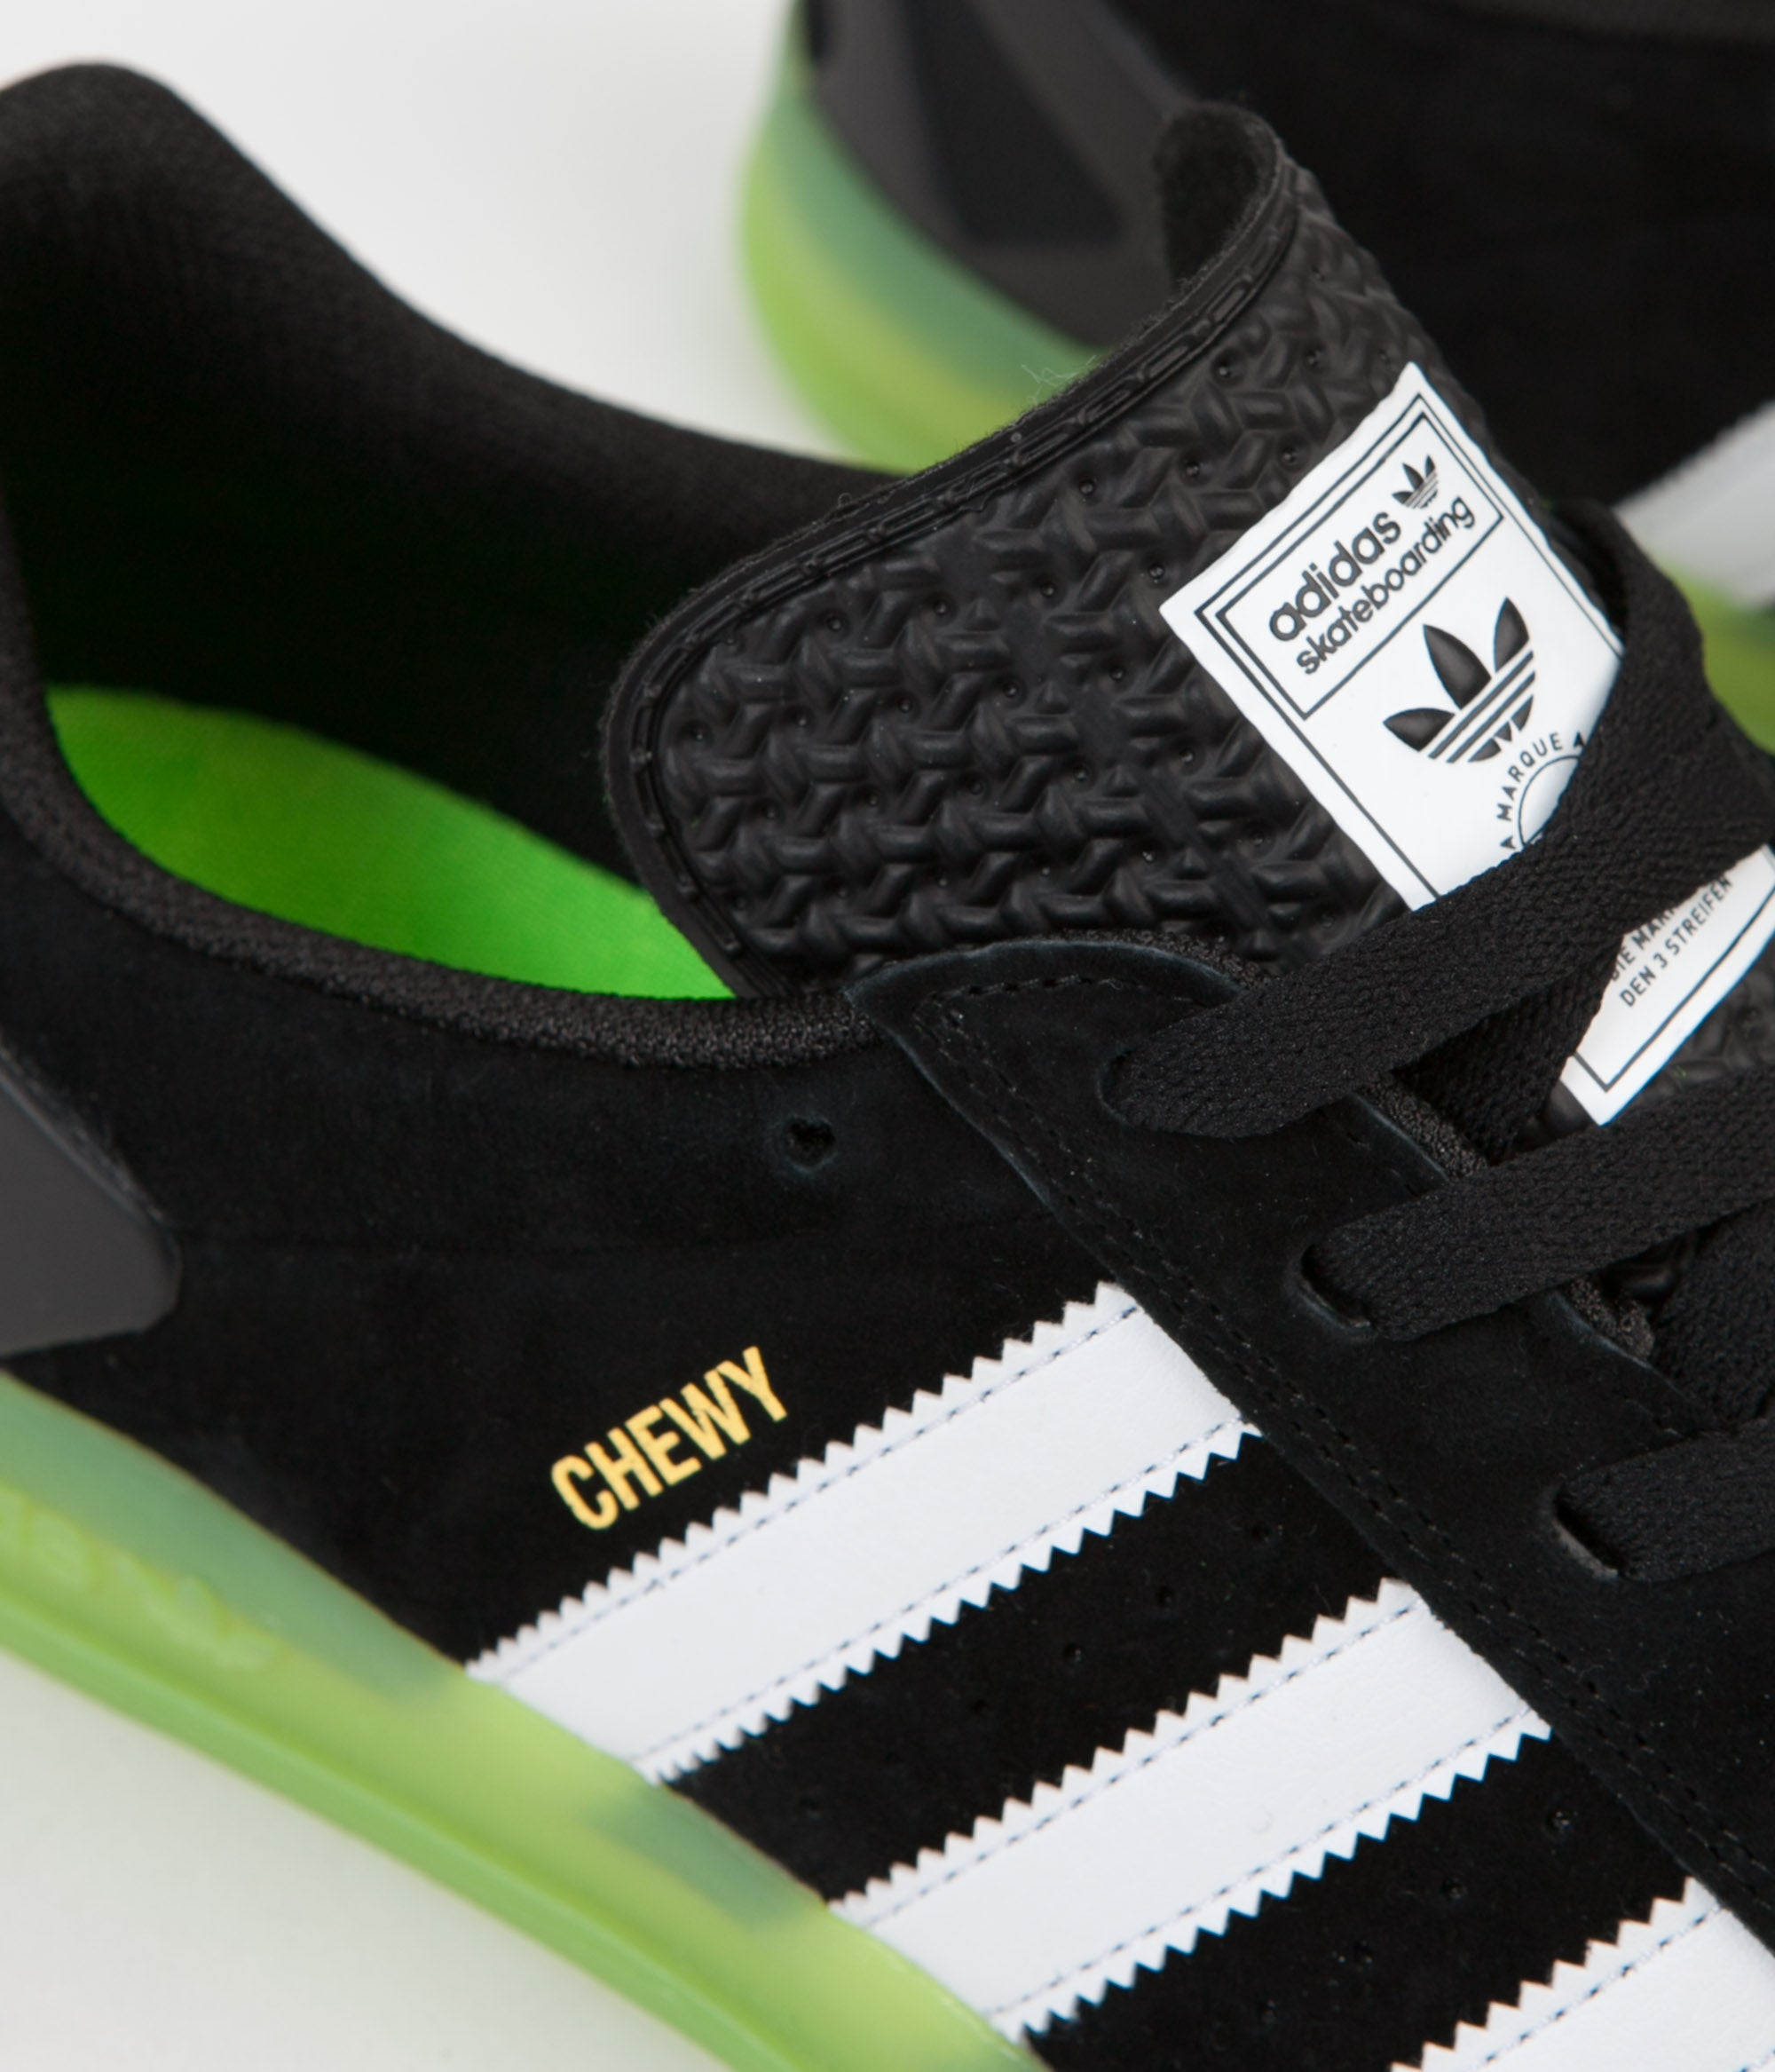 Adidas x Palace Pro  Chewy  Shoes - Black   White   Green  484bec9b9e12